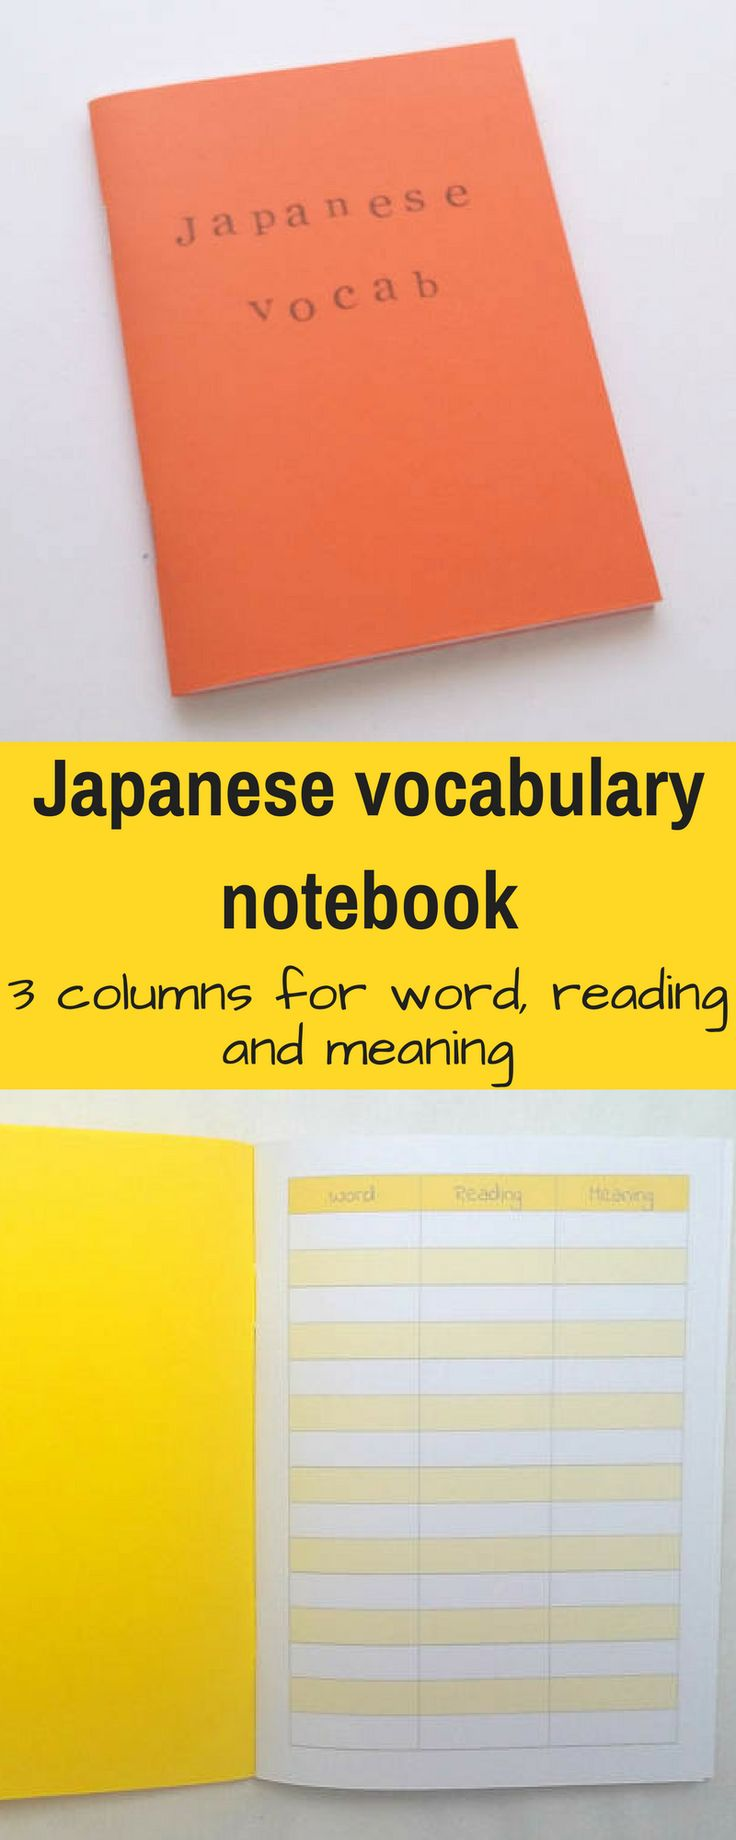 This notebook looks so useful for learning Japanese words! I've been looking for one like this with different columns. So I can write the words in Japanese characters in the first column, then pronunciation, then meaning. Really good idea. #ad #notebook #japanese #nihongo #languages #japanesestudy